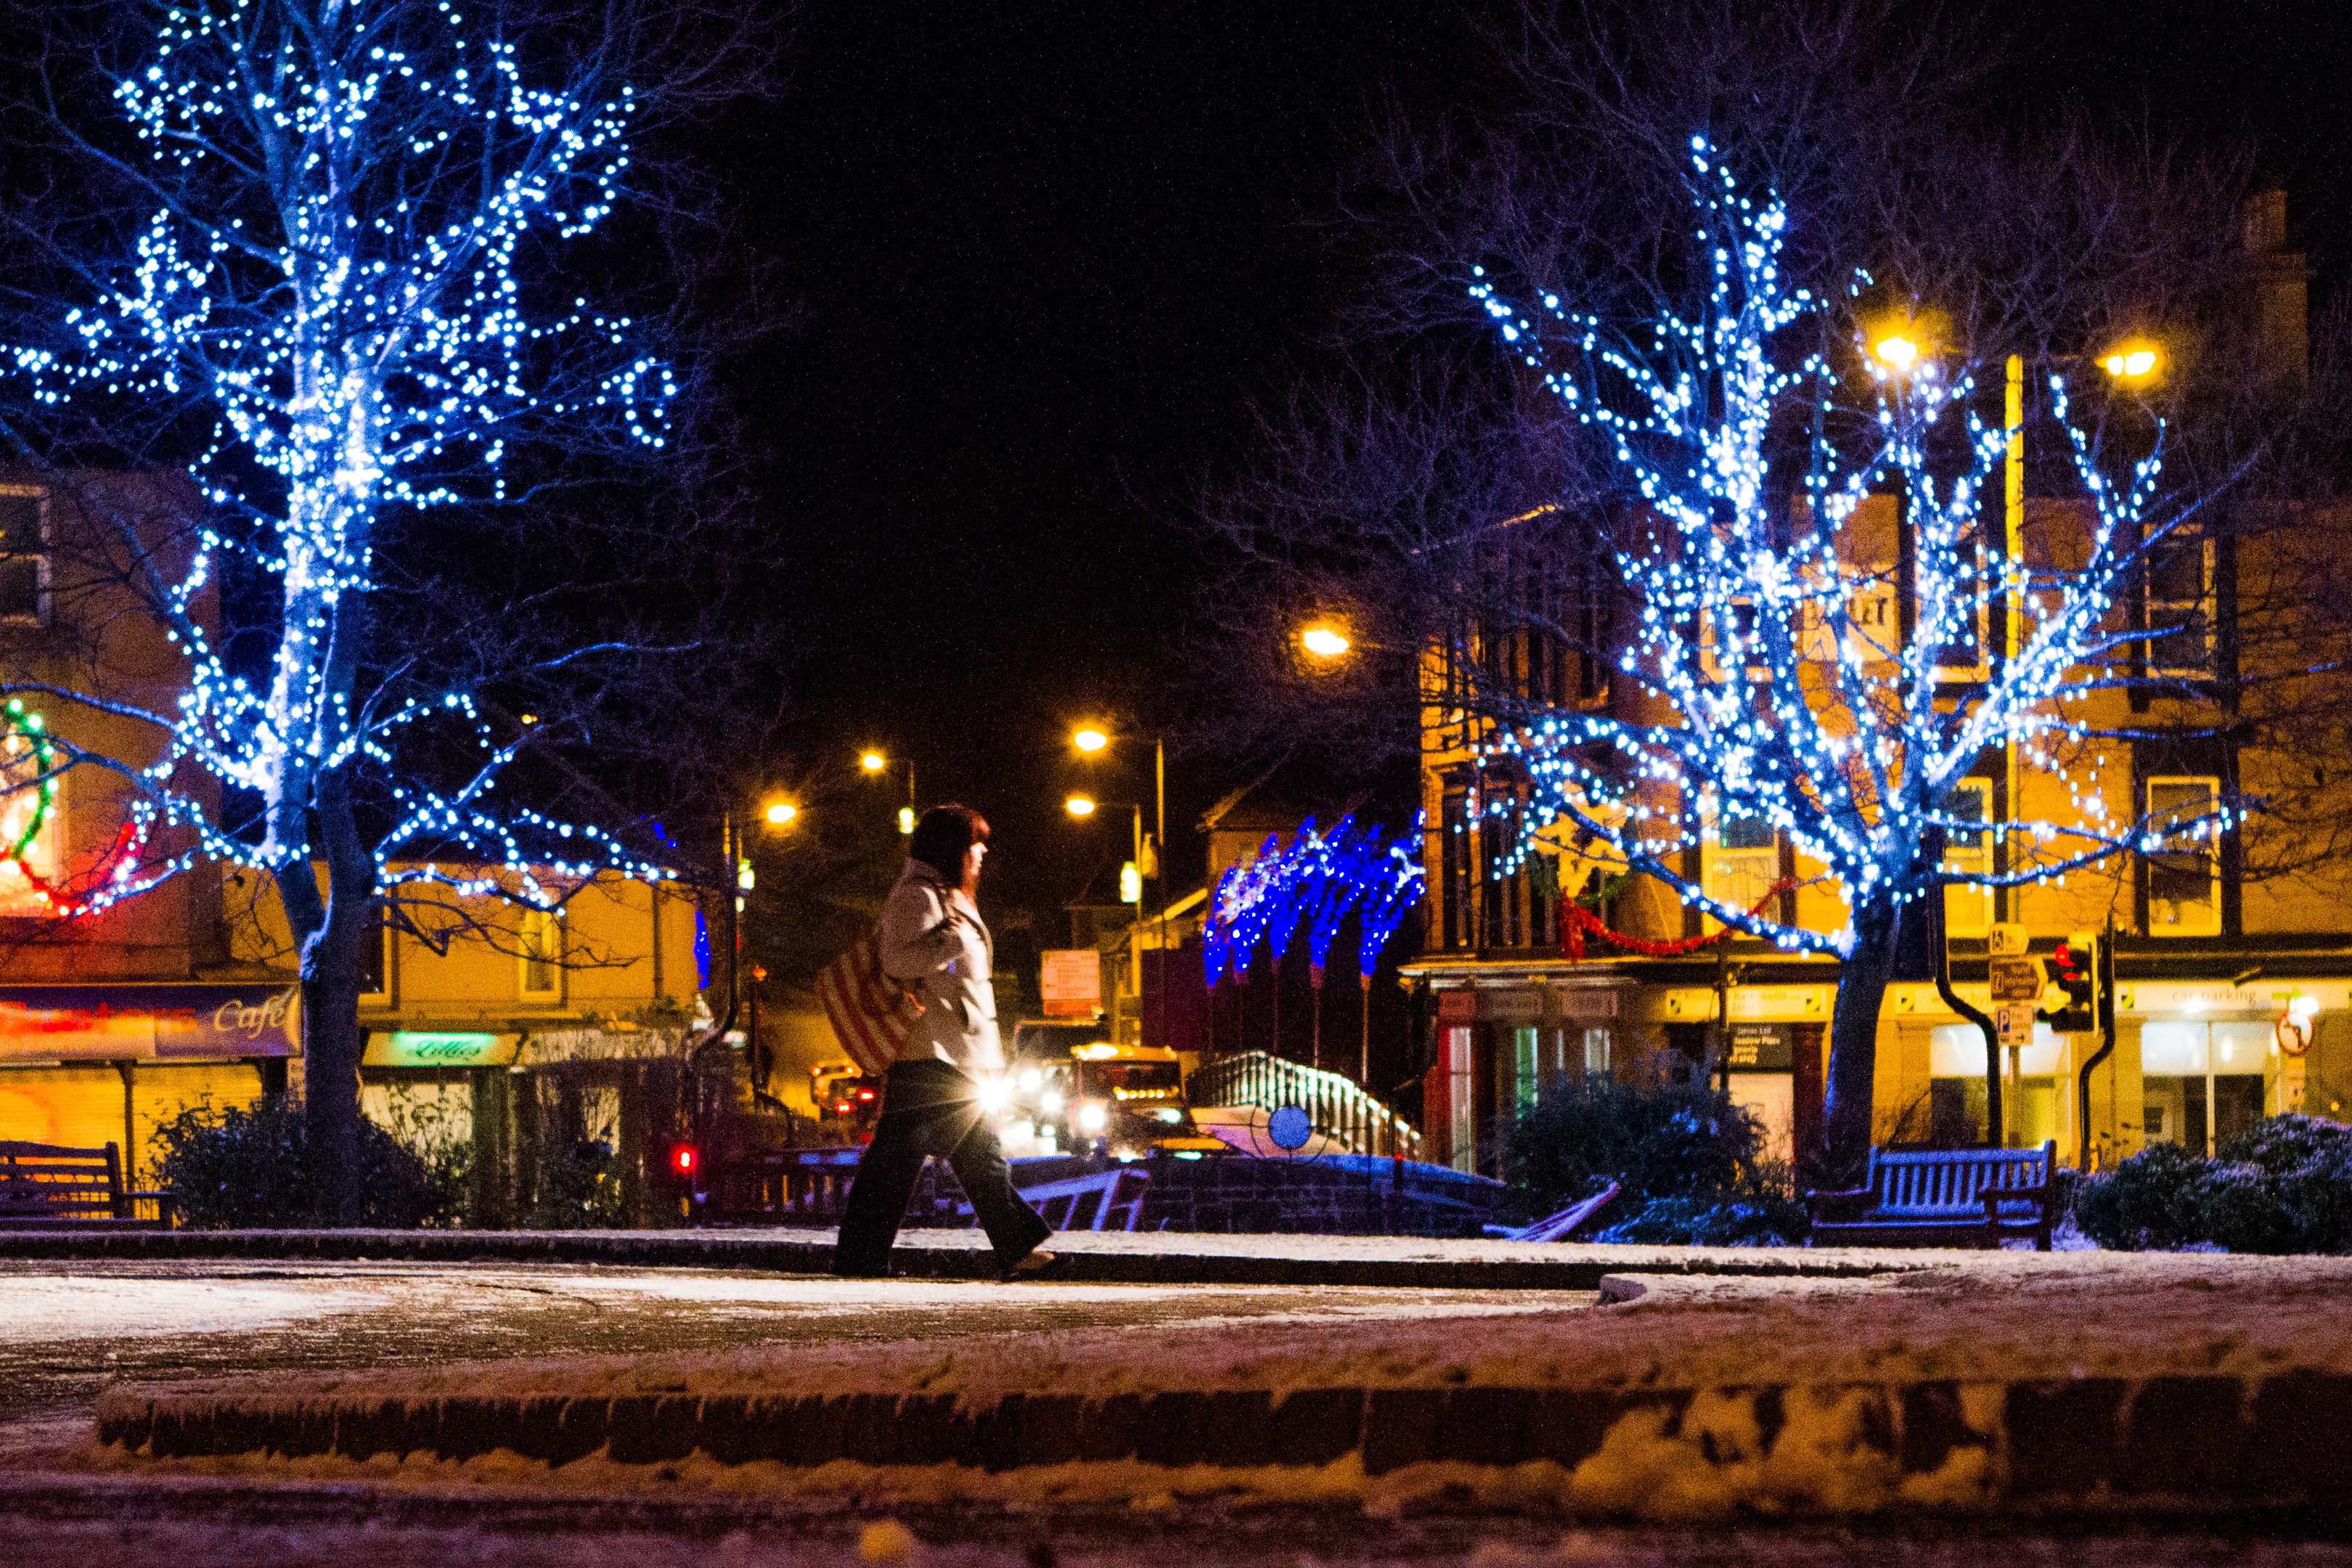 Christmas lights brighten up the Wellmeadow every year.